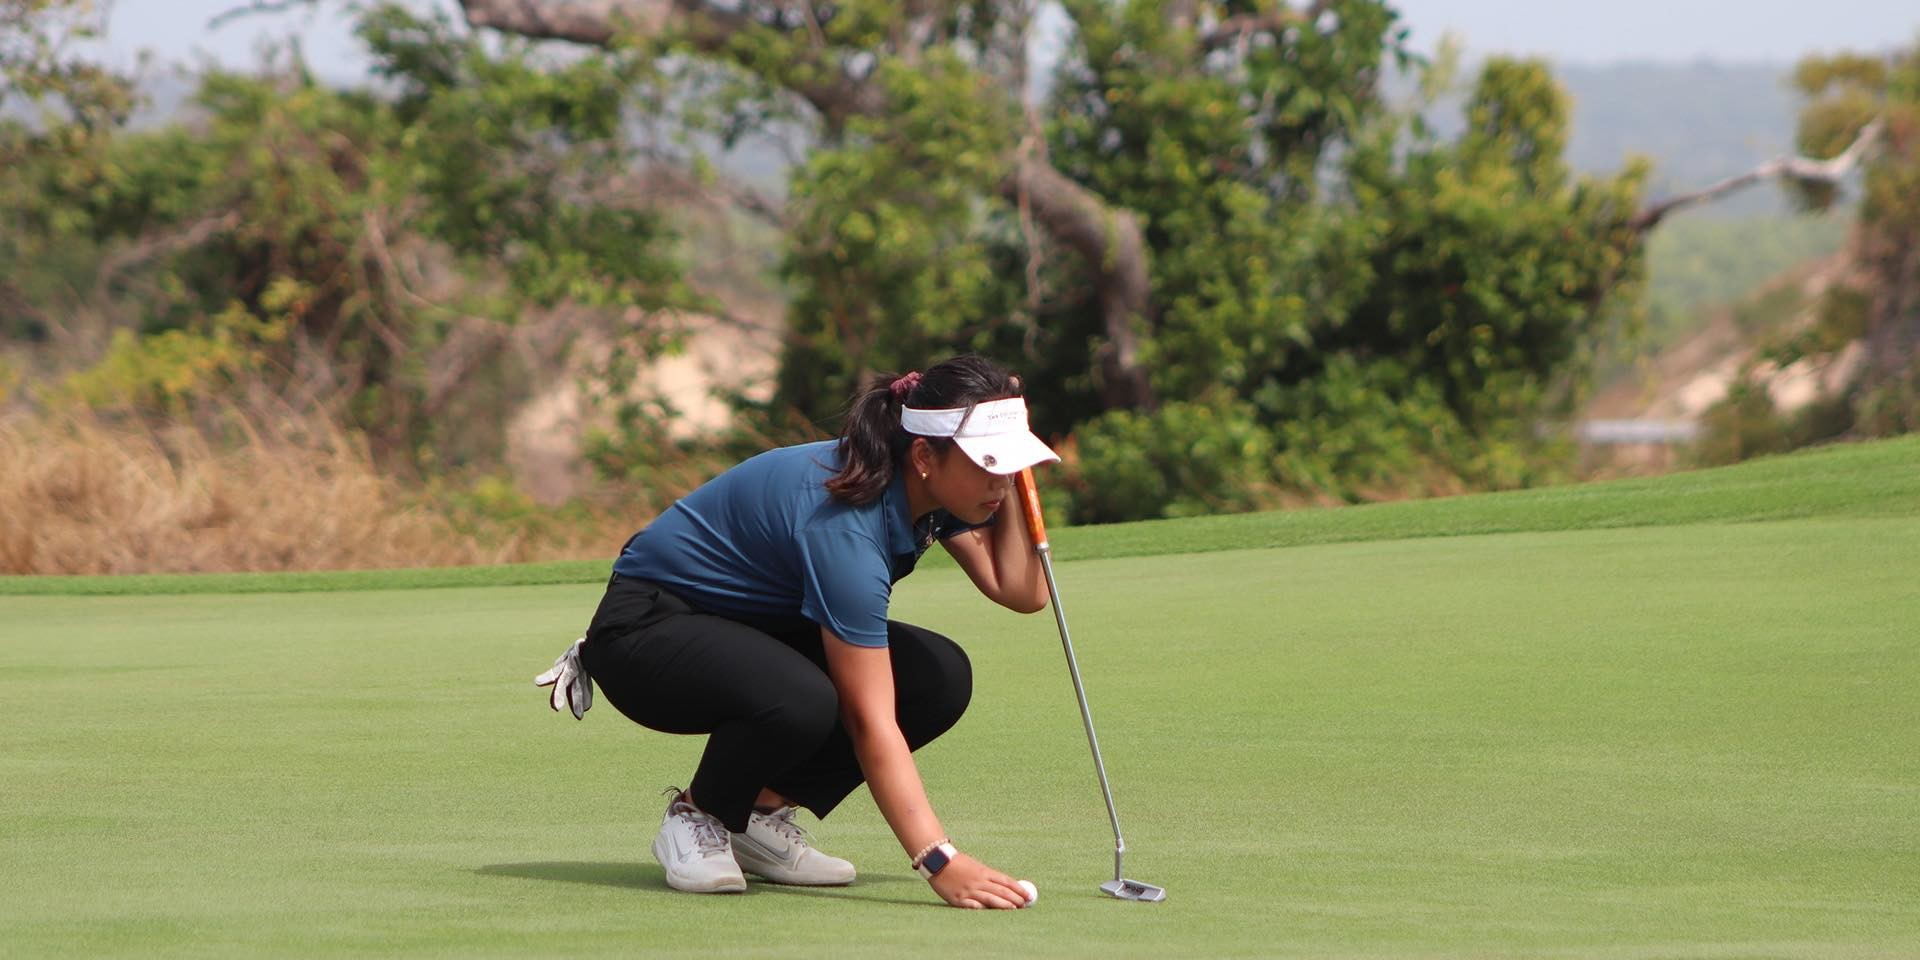 Round One Recap featuring Sam Dizon leading the charge